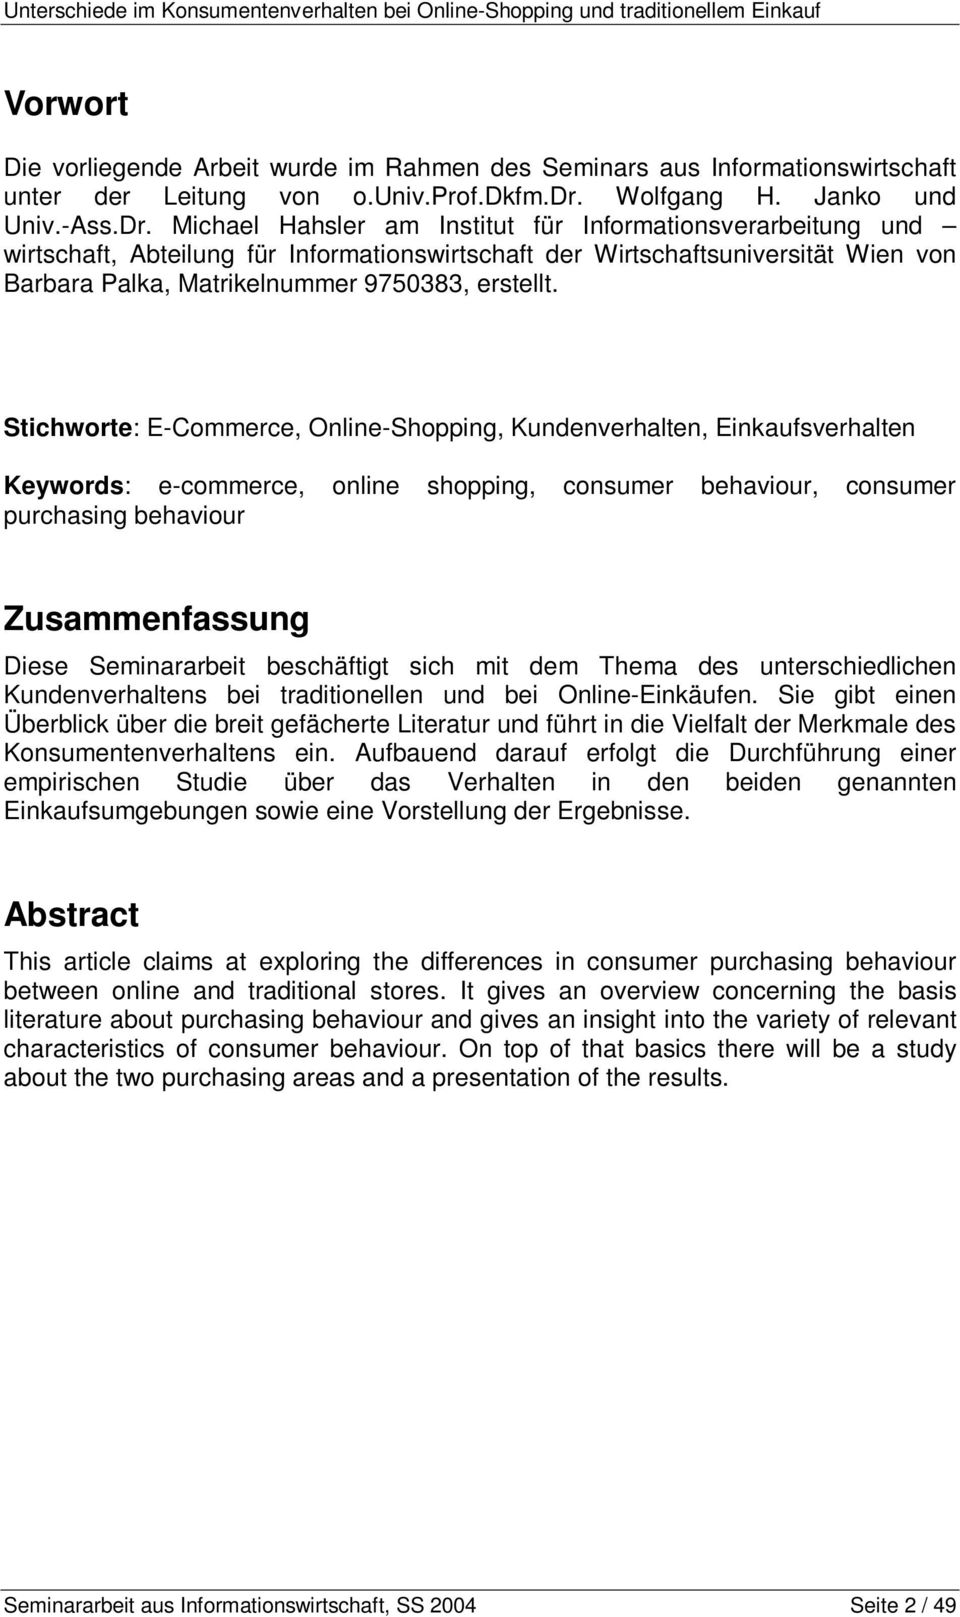 Stichworte: E-Commerce, Online-Shopping, Kundenverhalten, Einkaufsverhalten Keywords: e-commerce, online shopping, consumer behaviour, consumer purchasing behaviour Zusammenfassung Diese